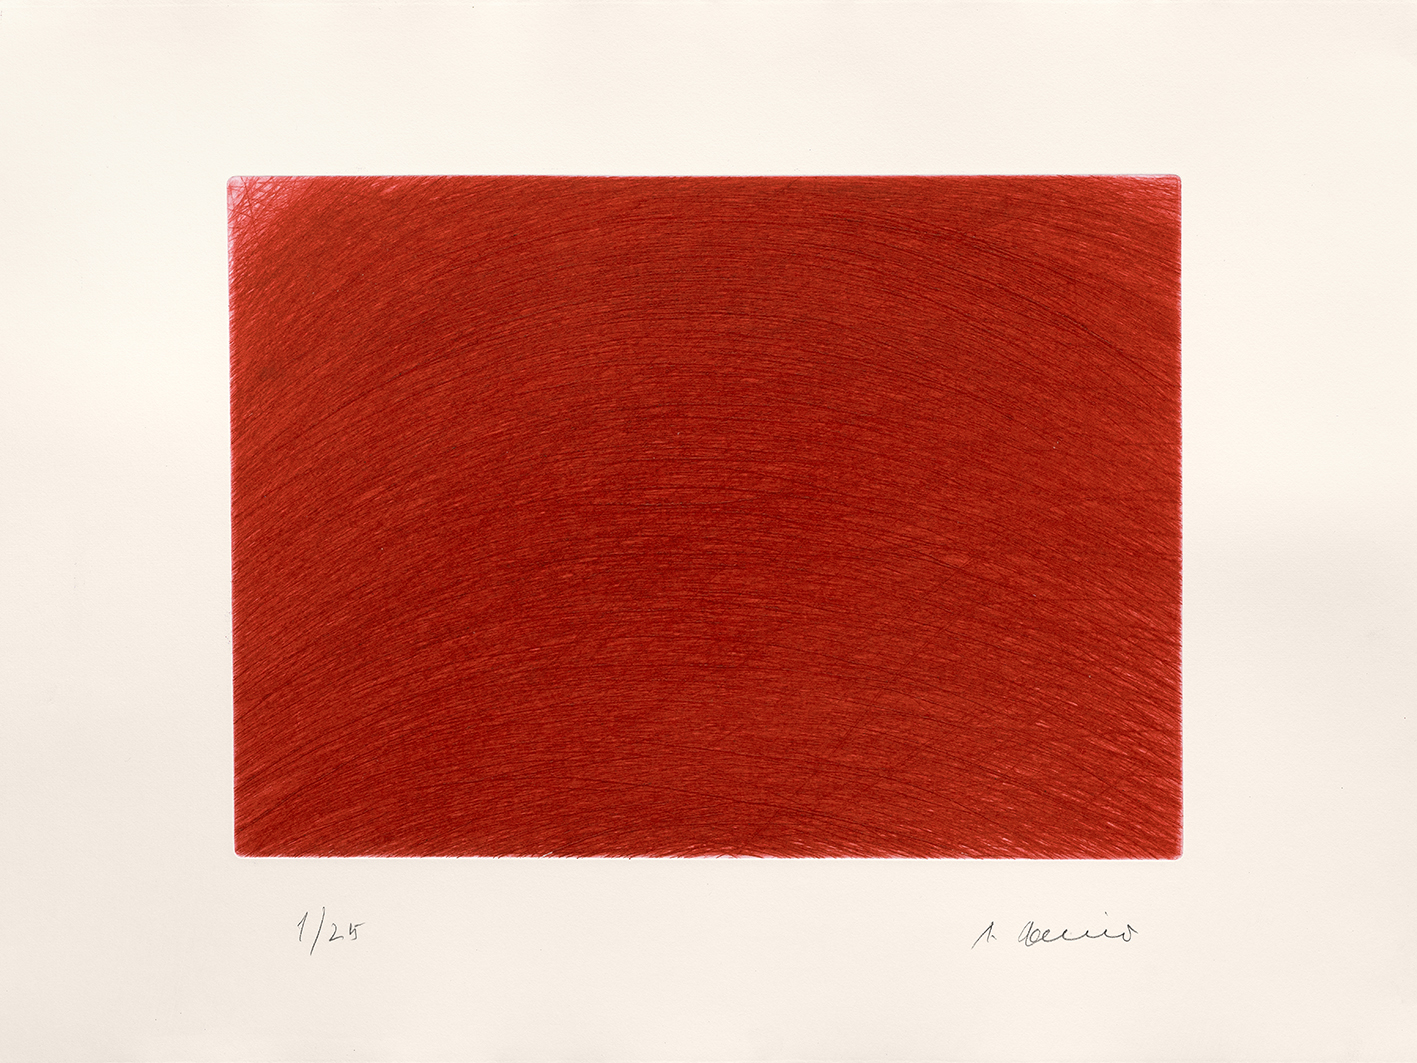 estampe Vague rouge Arnulf Rainer